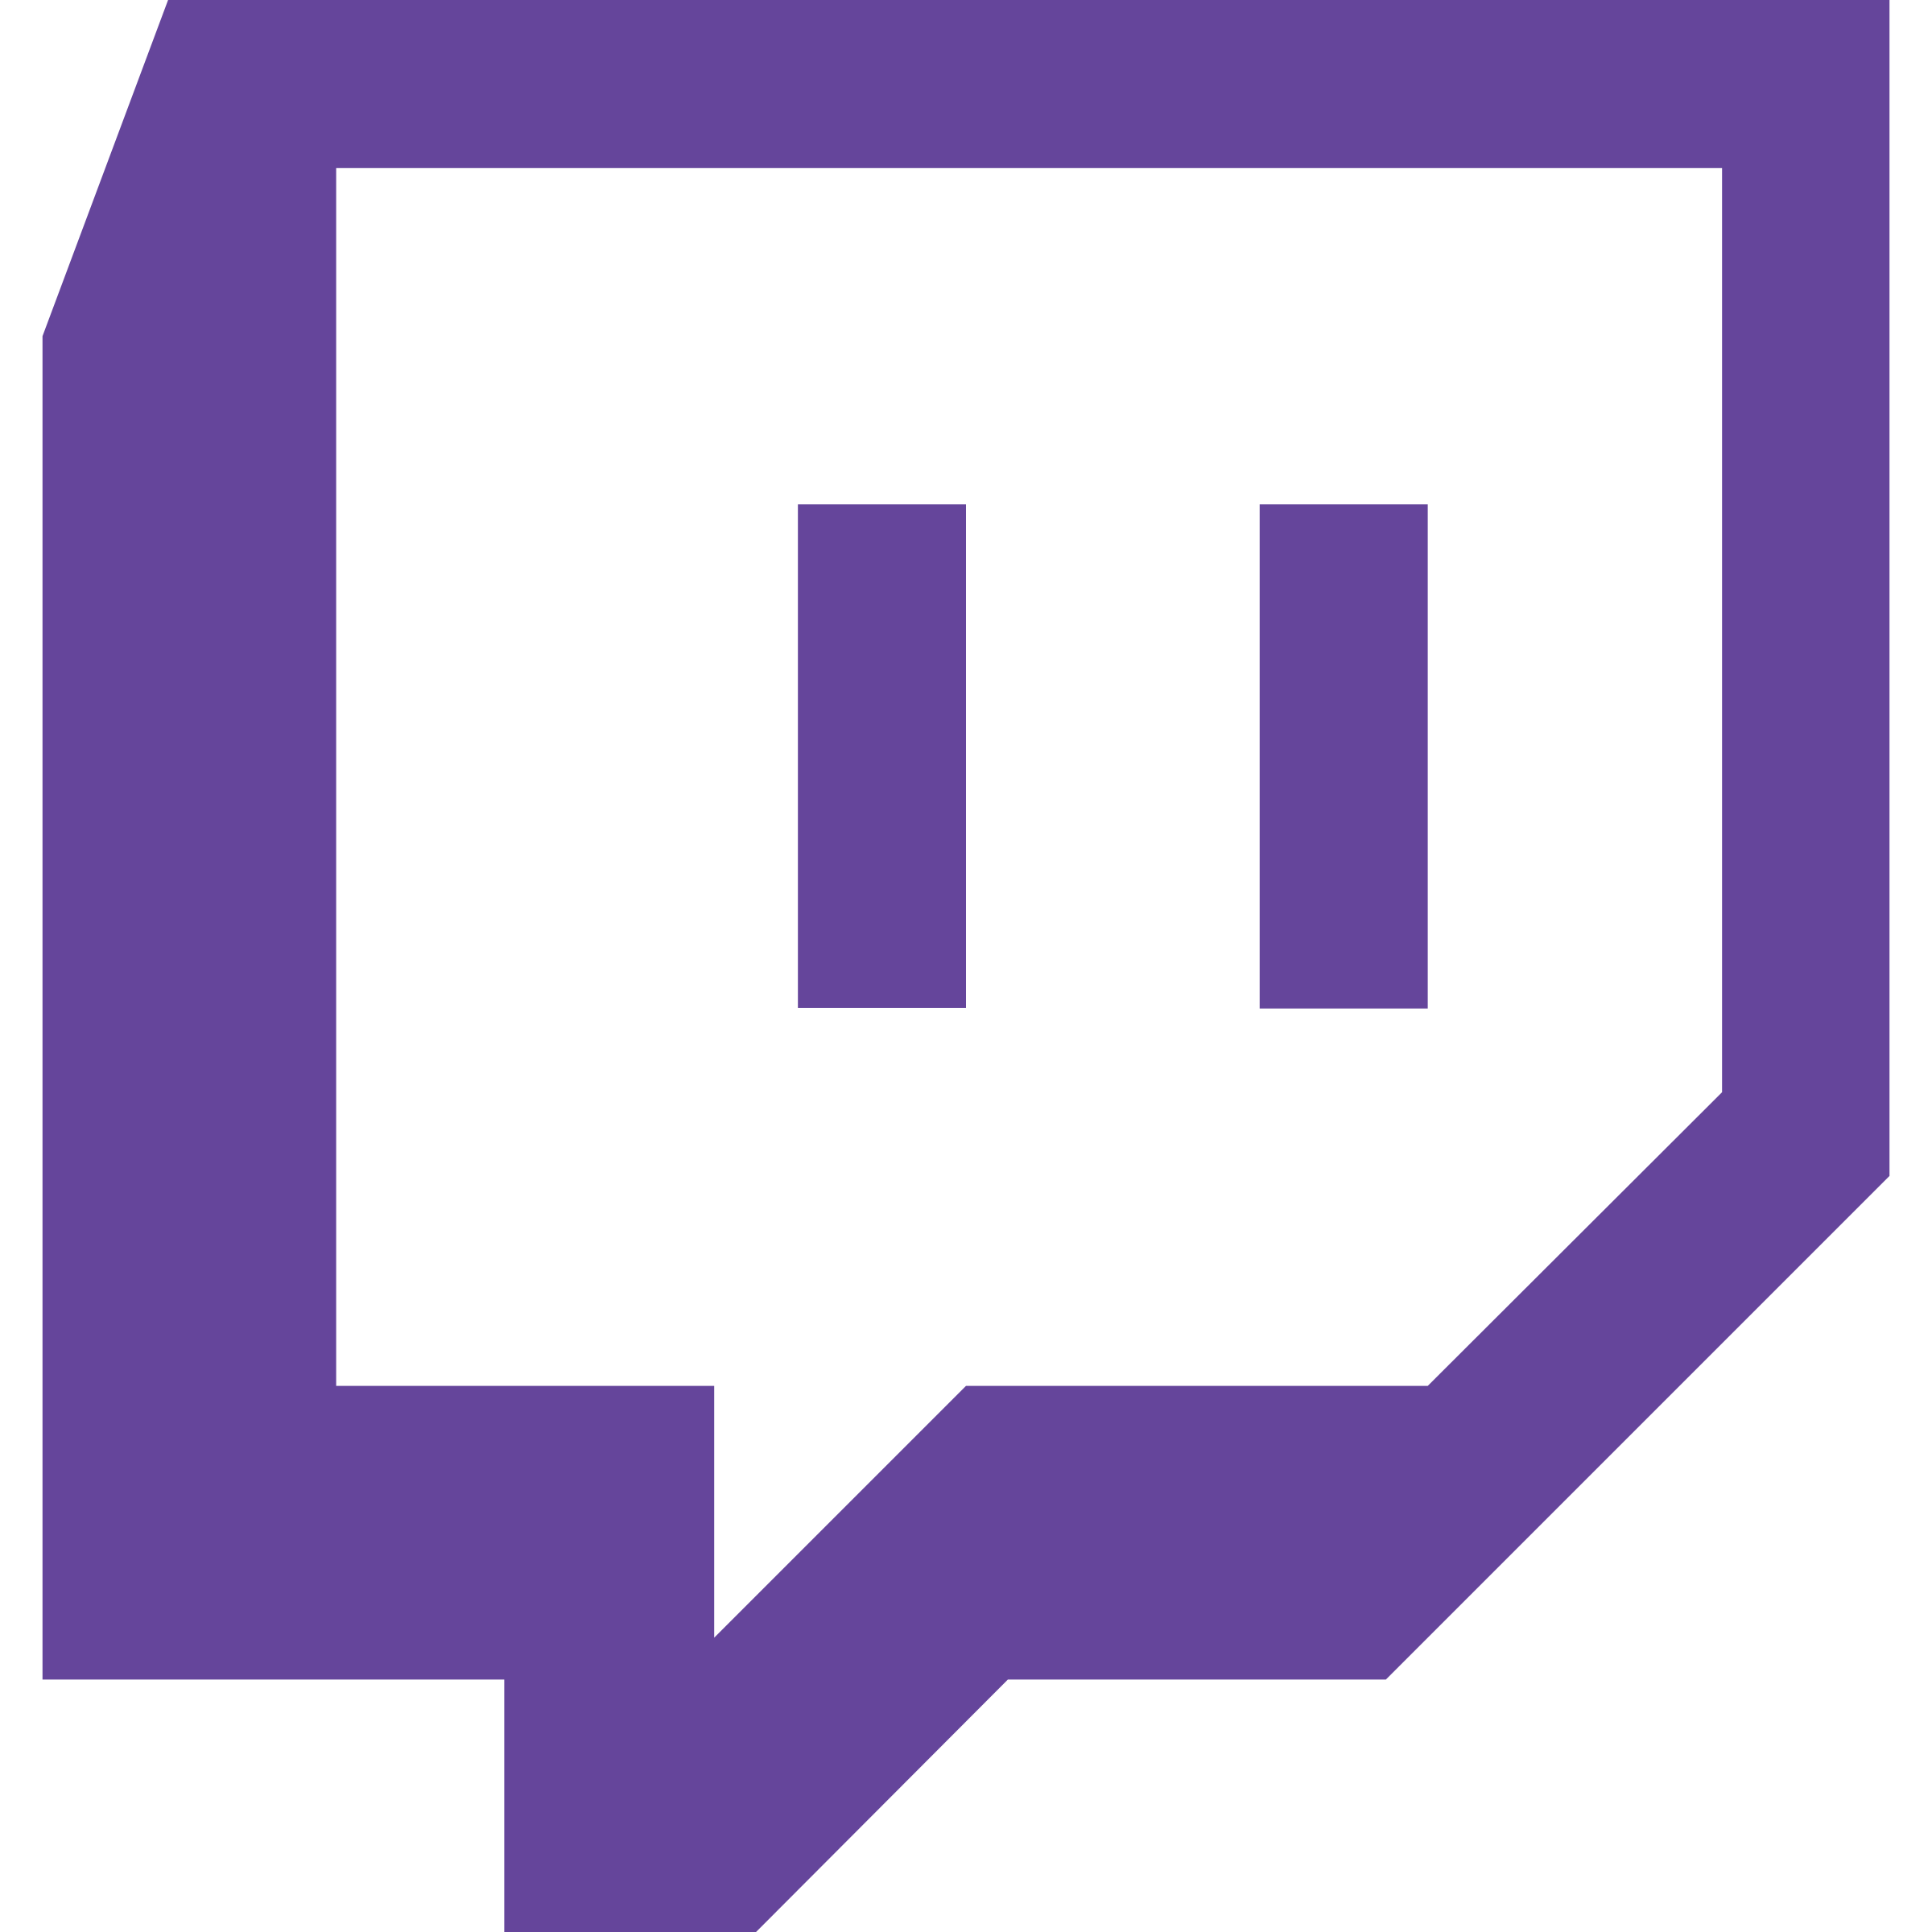 twitch-purple-logo-png-transparent